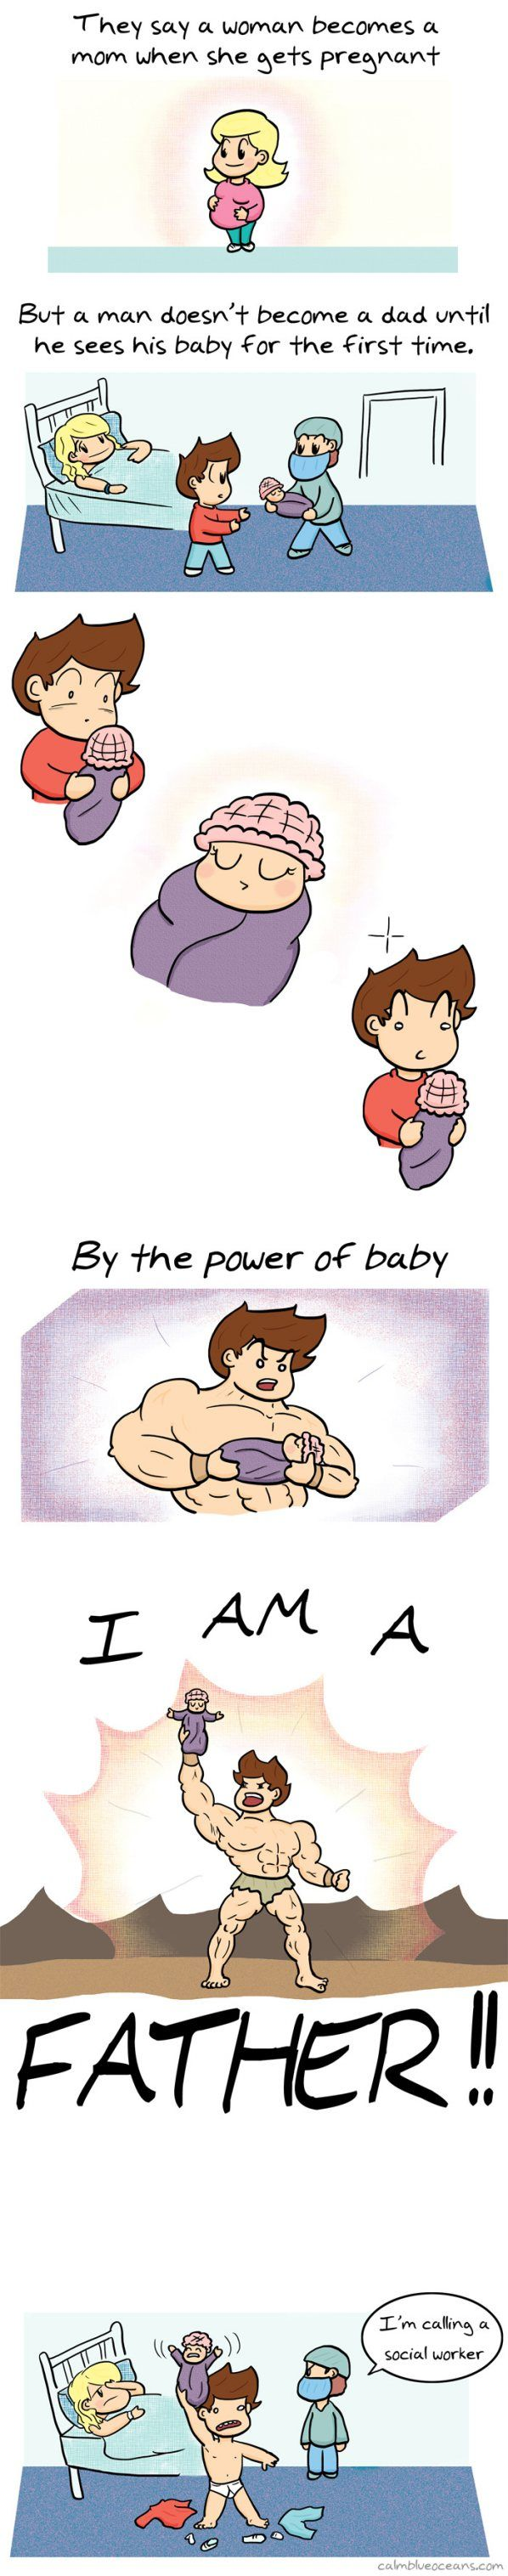 A Father   // funny pictures - funny photos - funny images - funny pics - funny quotes - #lol #humor #funnypictures